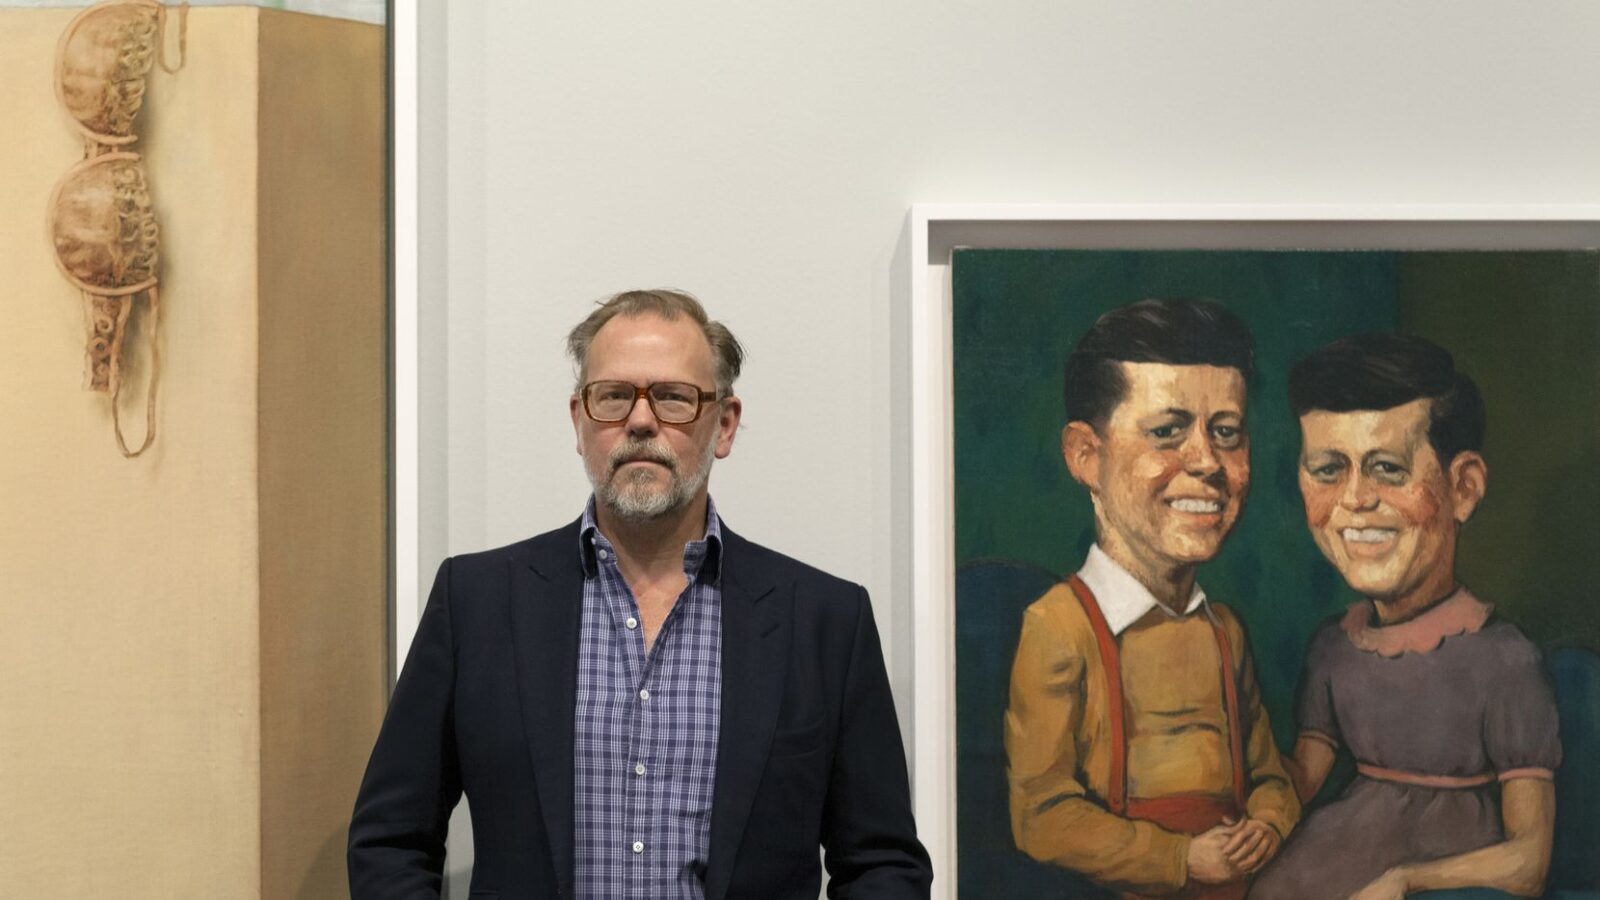 John Currin Biography, The Best Works